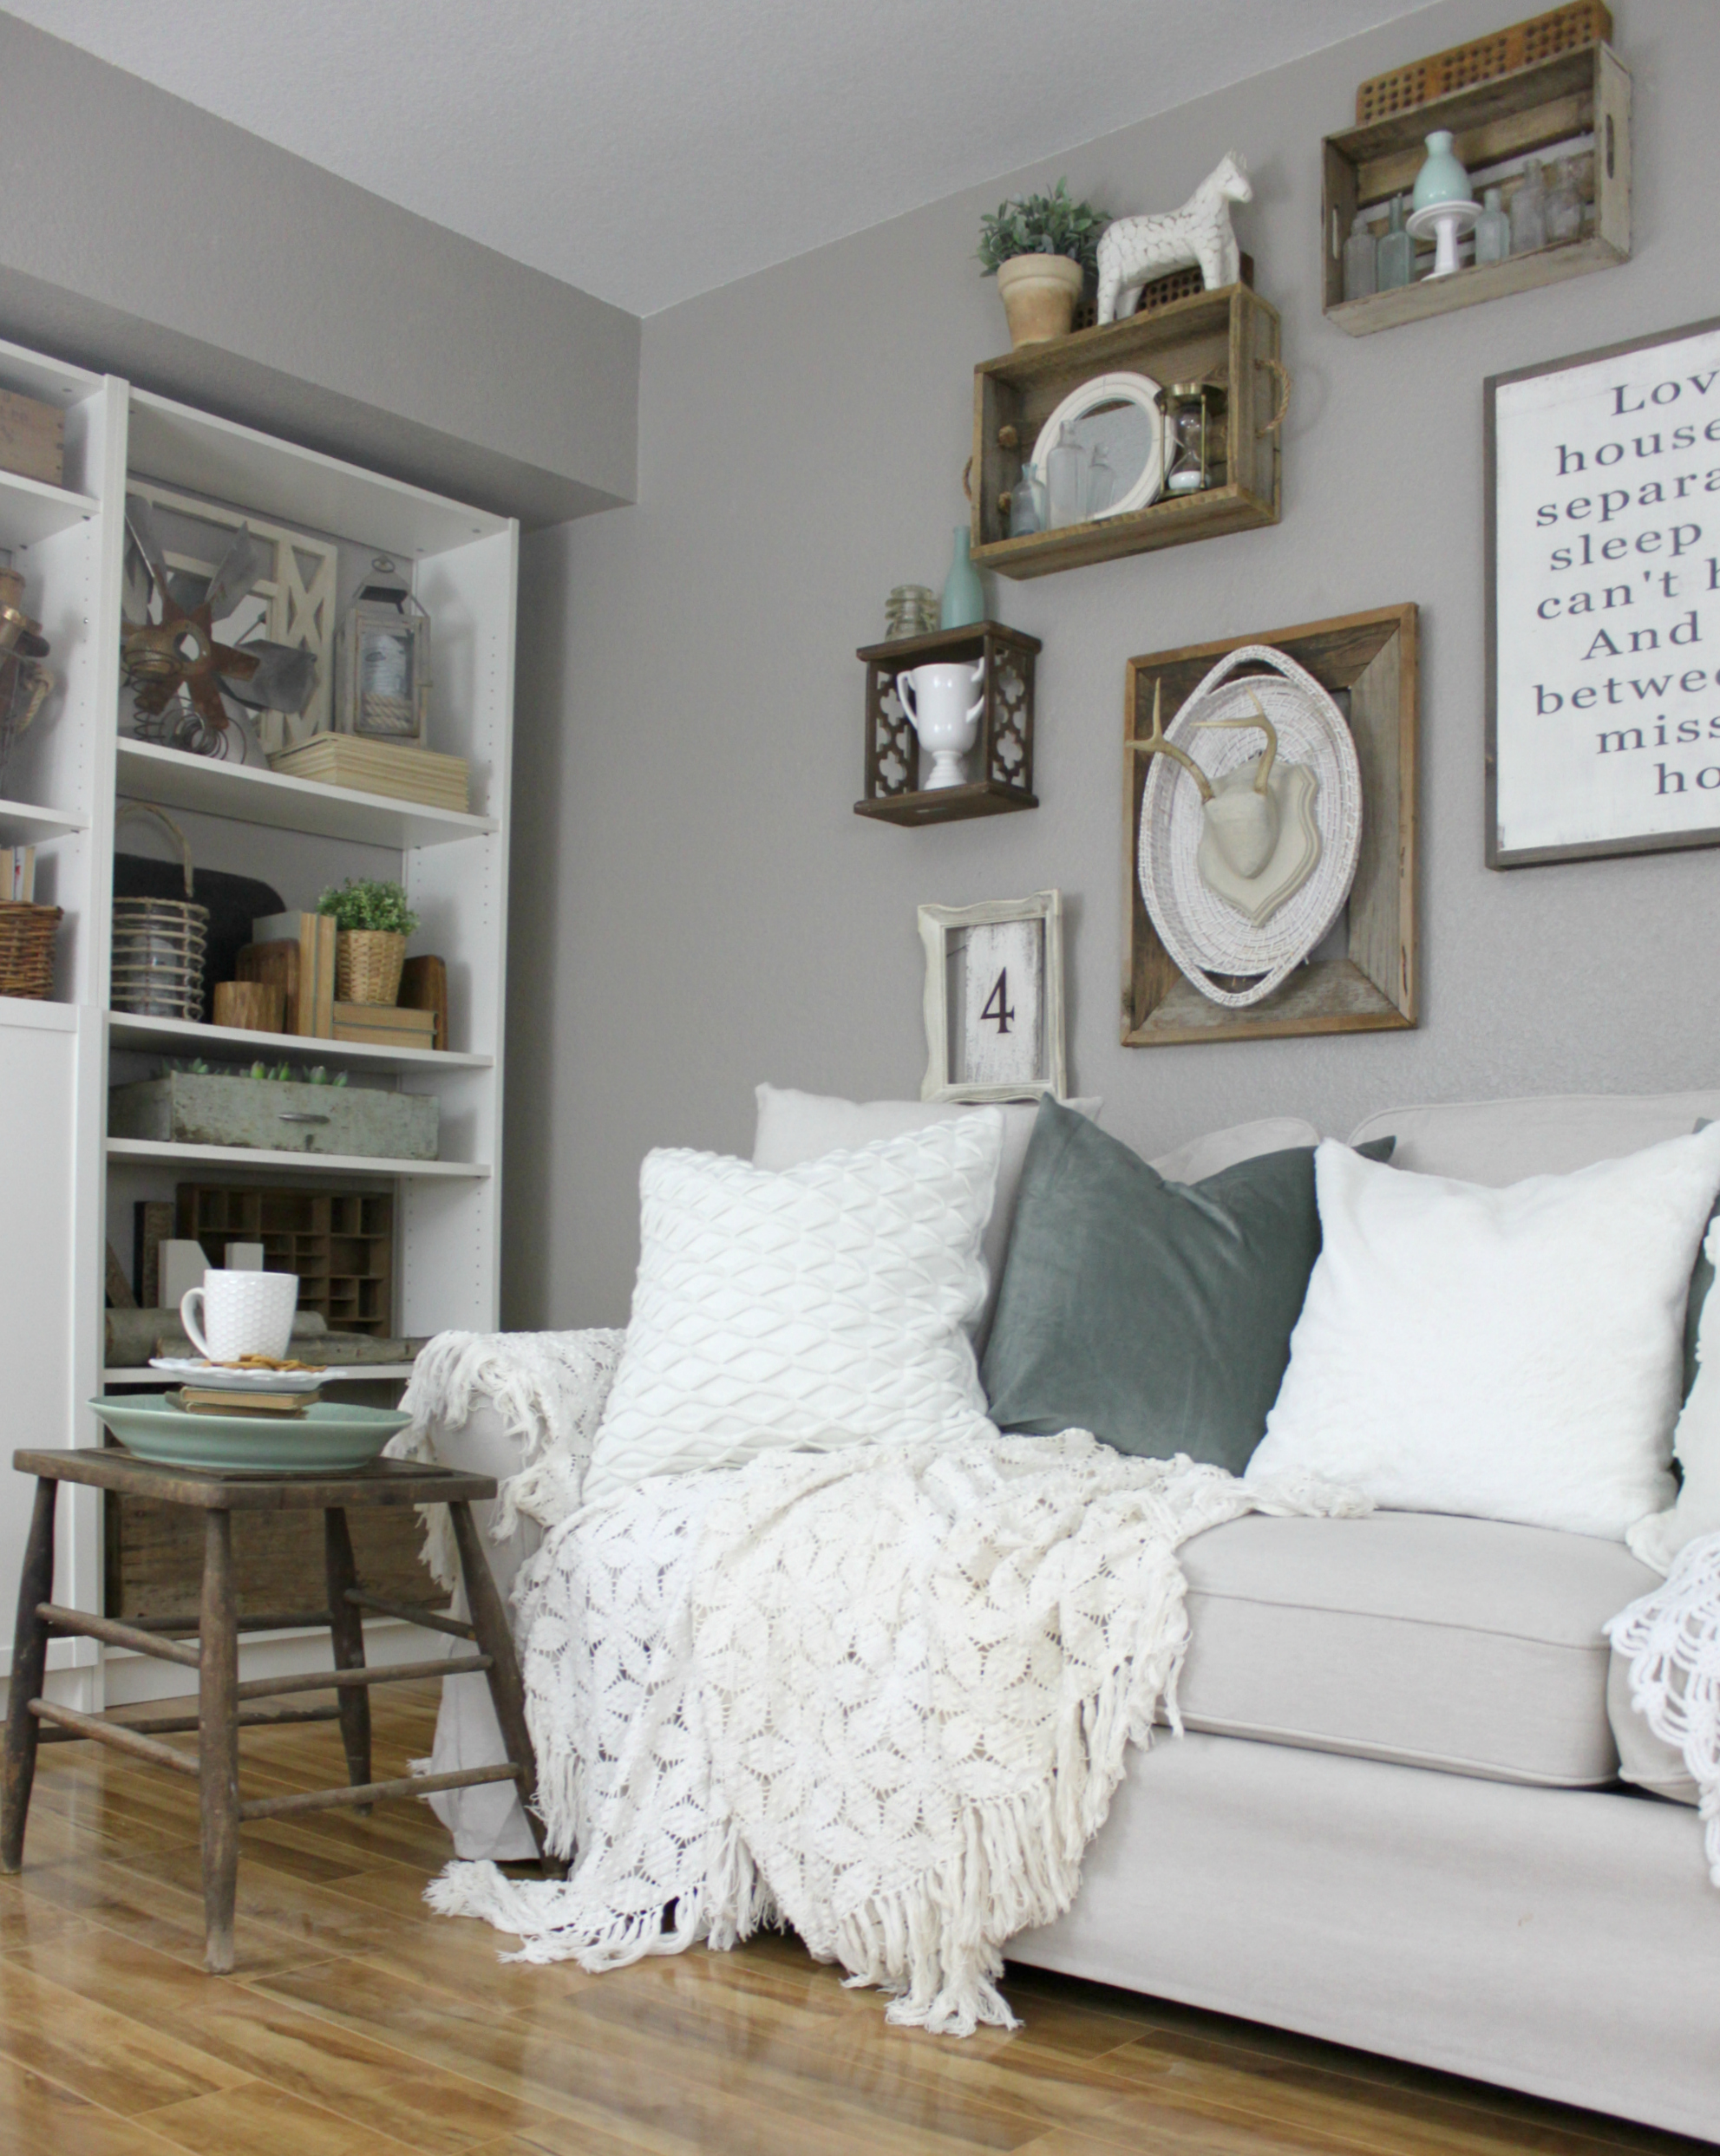 How to Add a Pop of Color to Neutral Decor | An Inspired Nest